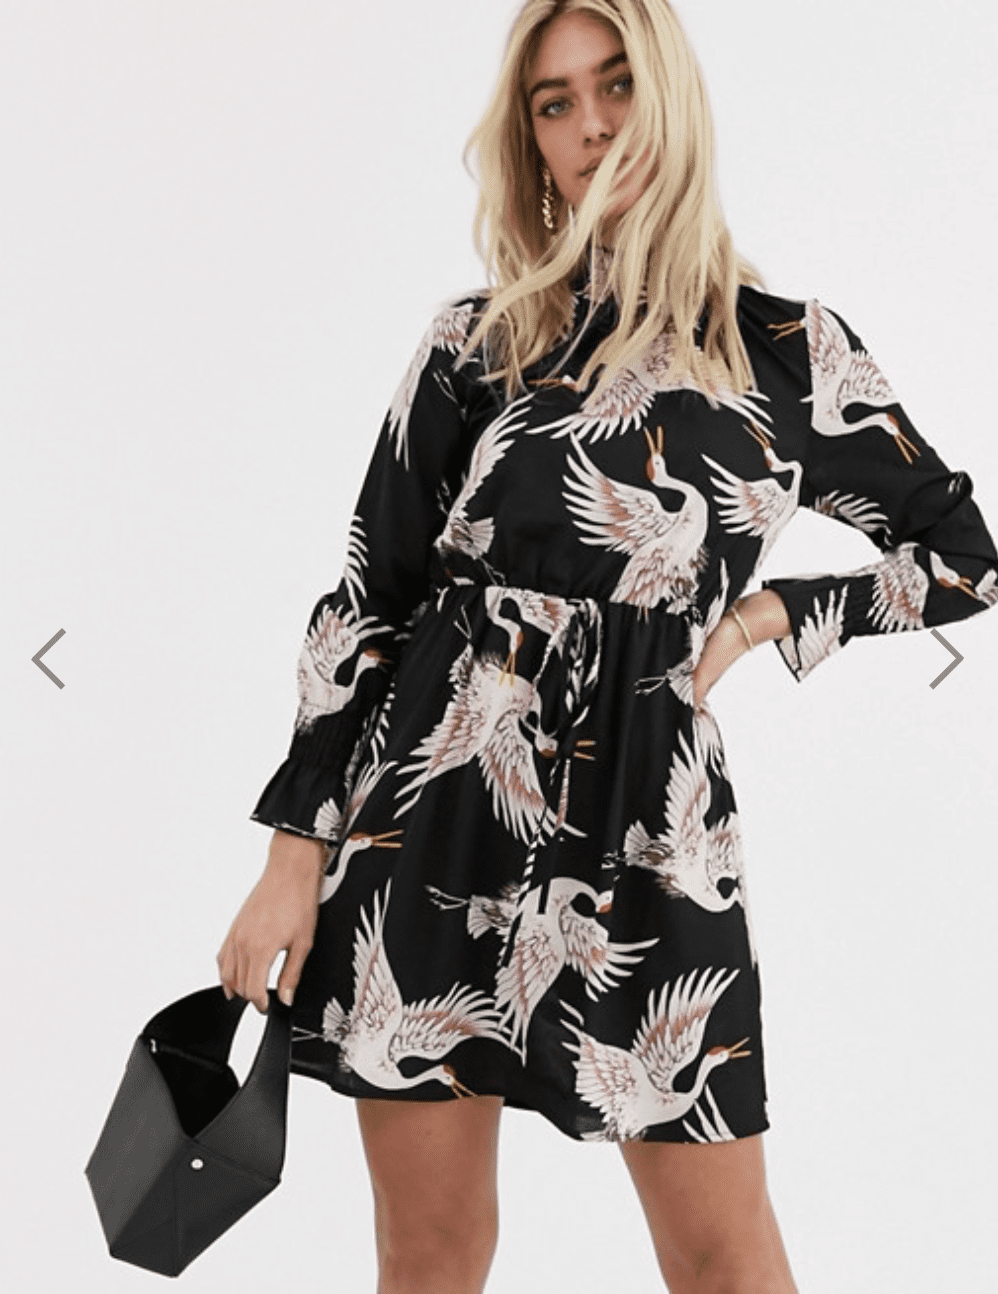 ASOS: Up to 70% off sale styles